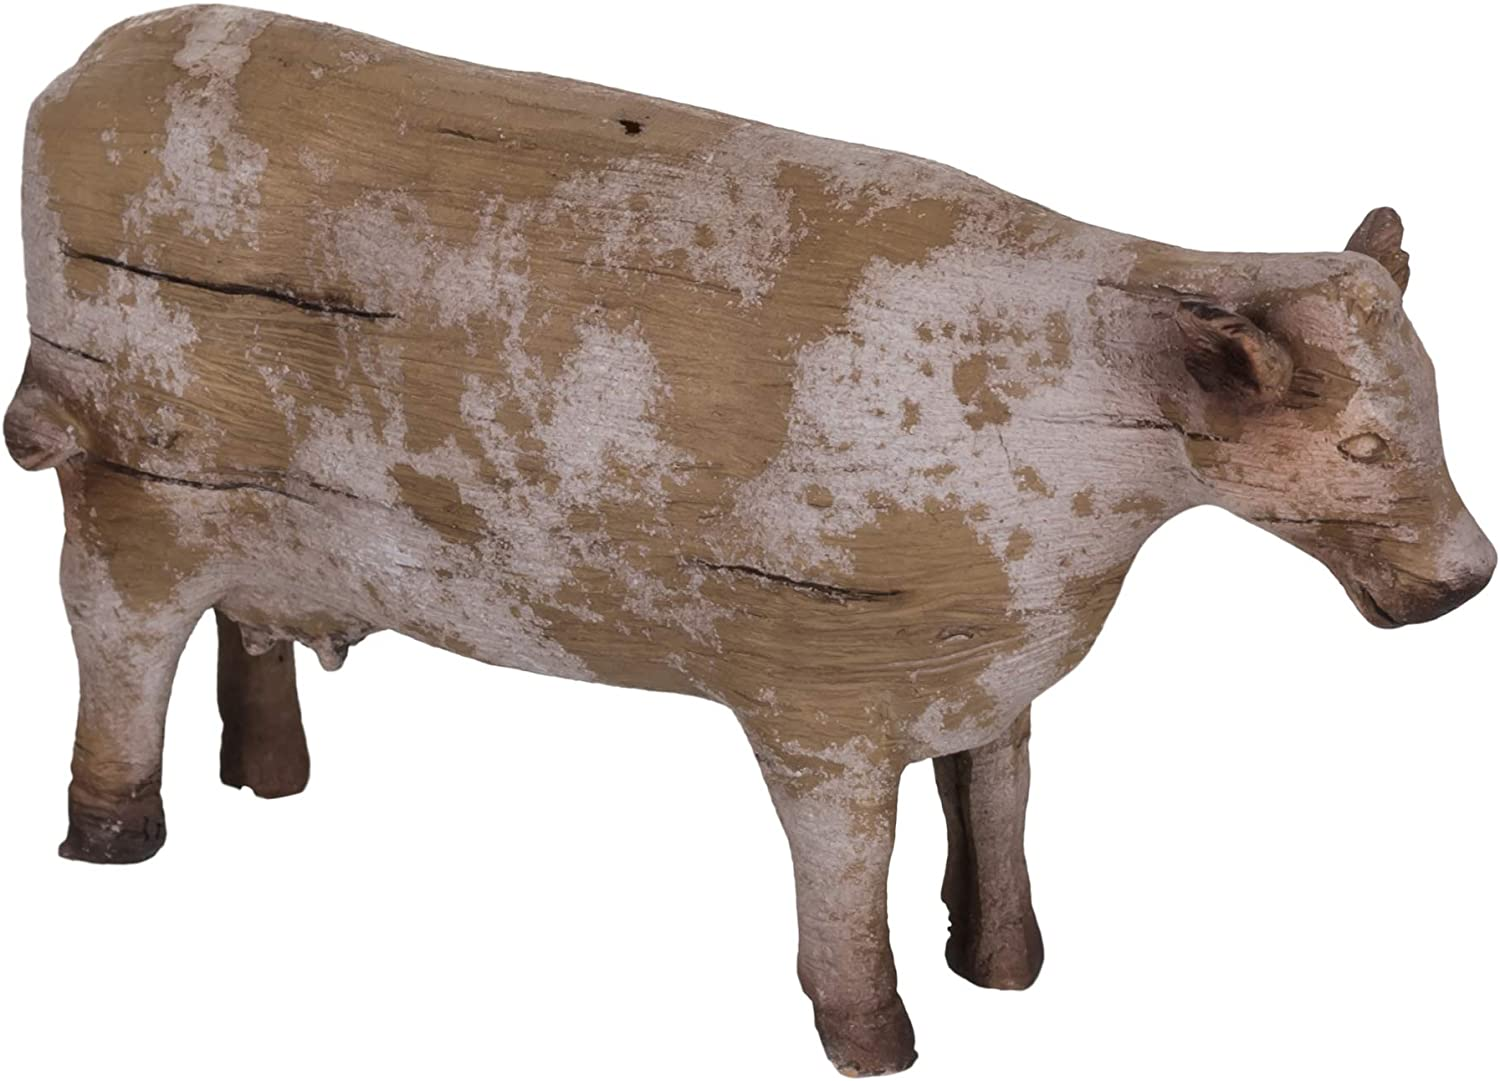 The Country House Rustic Cow Aged Cream 7 x 4 Carved Look Resin Stone Collectible Figurine